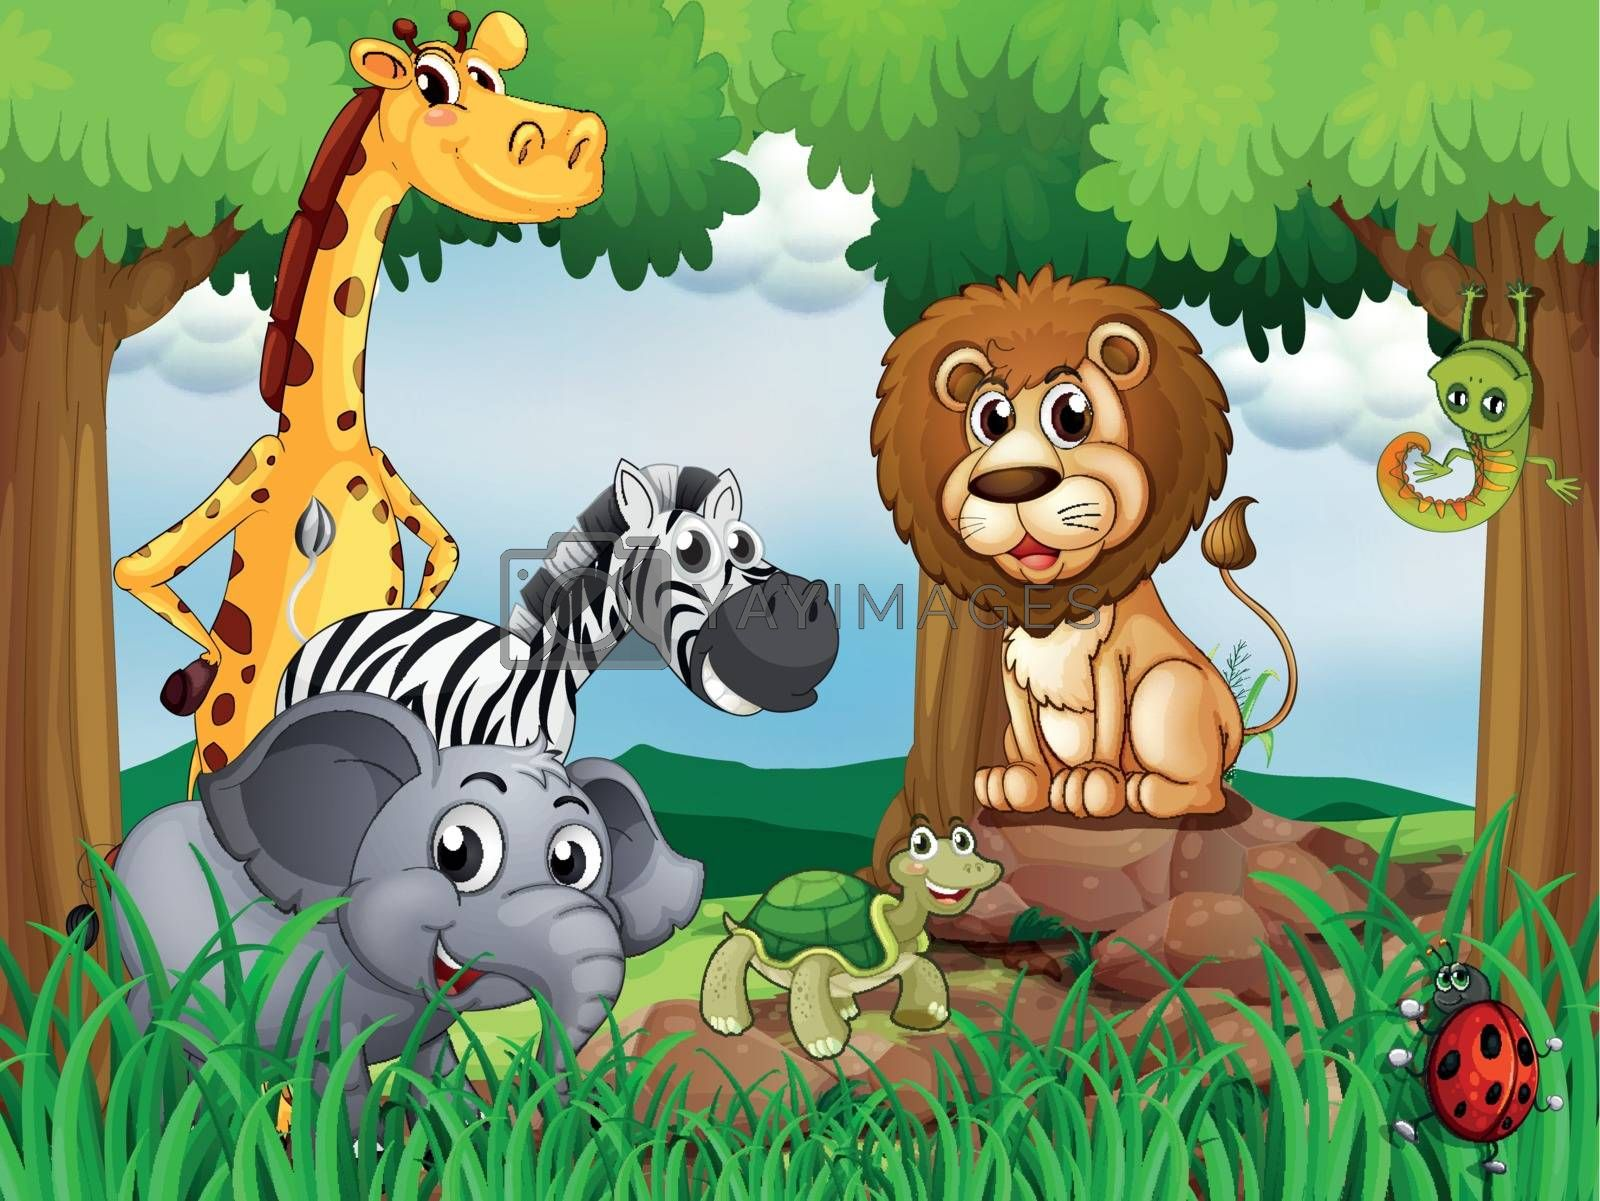 Illustration of a group of animals in the middle of the forest